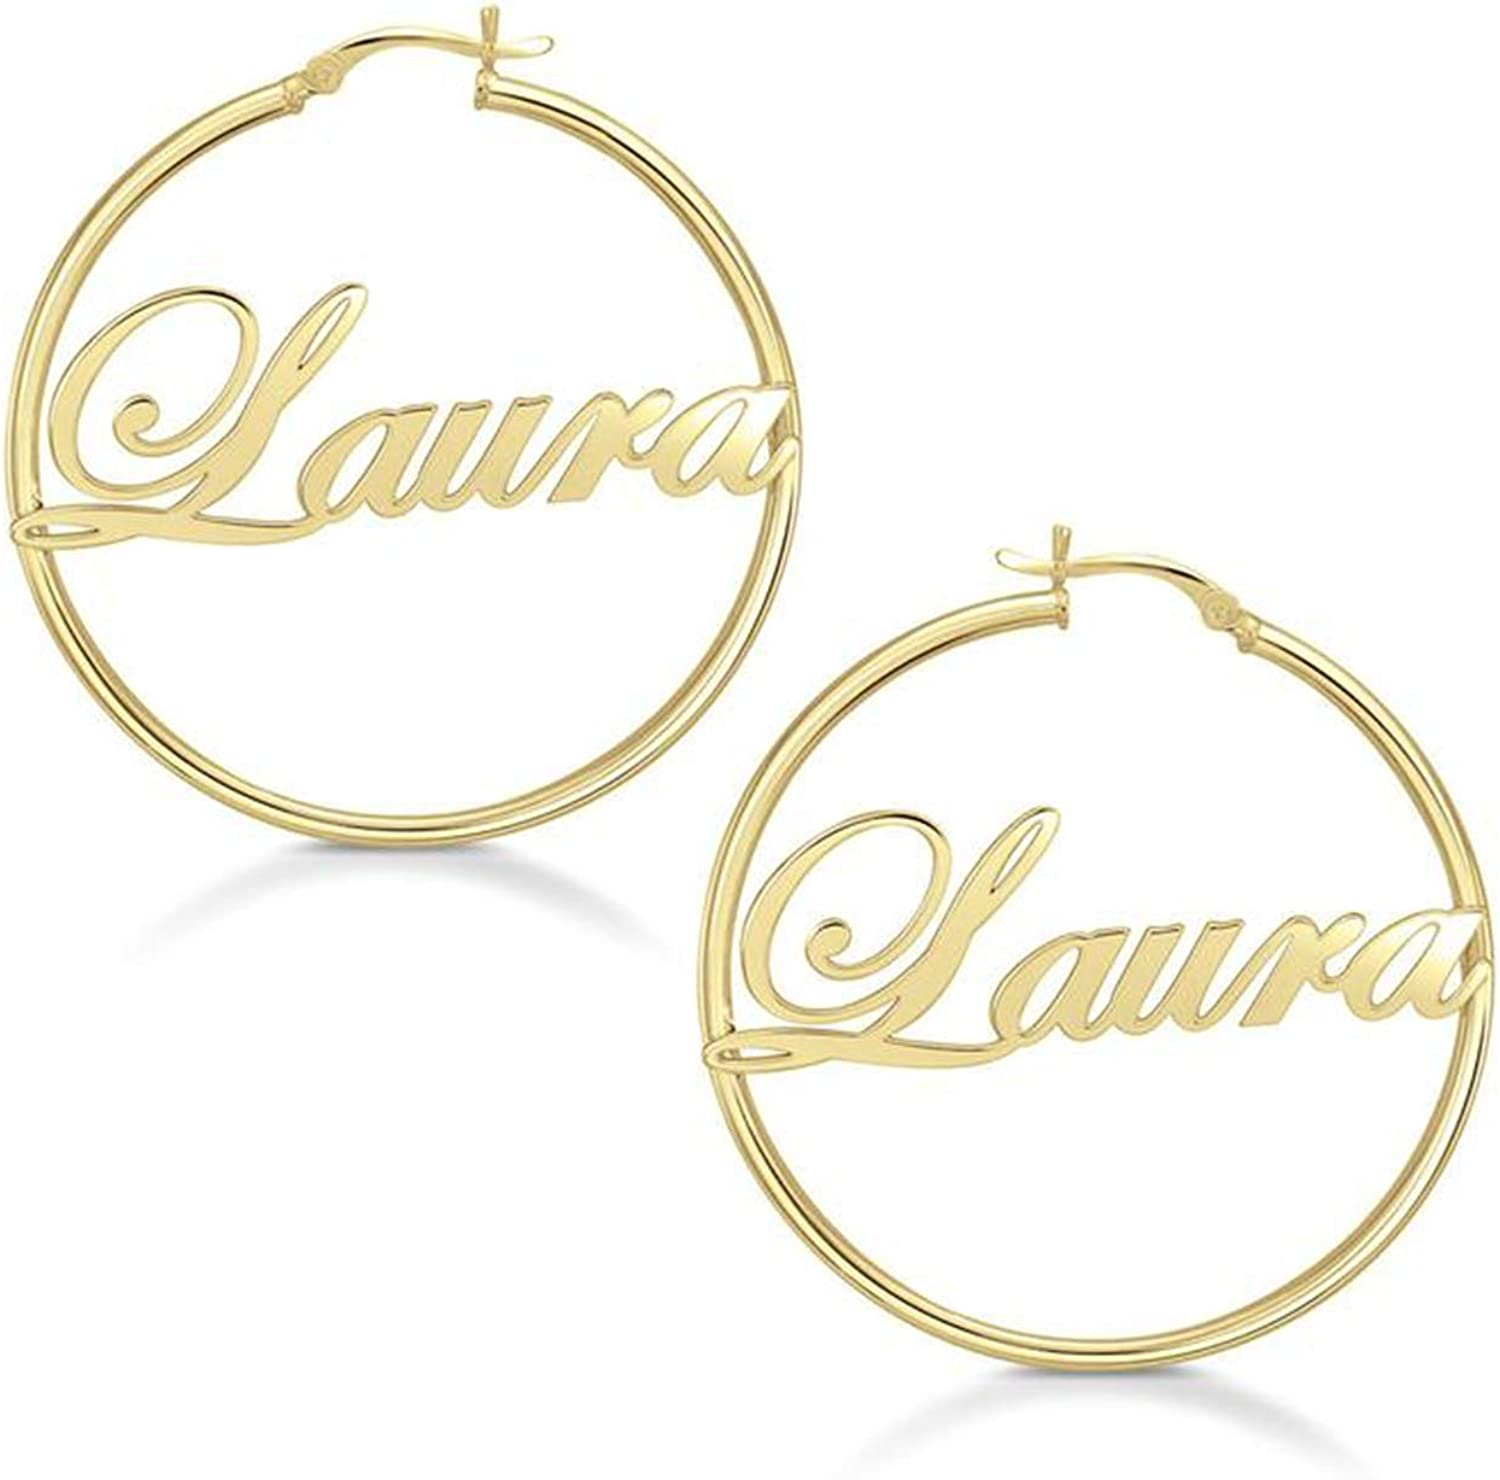 Name Hoop Earrings   Large Hoop Earrings in Sterling Silver Yellow Gold or Rose Gold  Name Earring  Personalized Jewelry  Name Jewelry